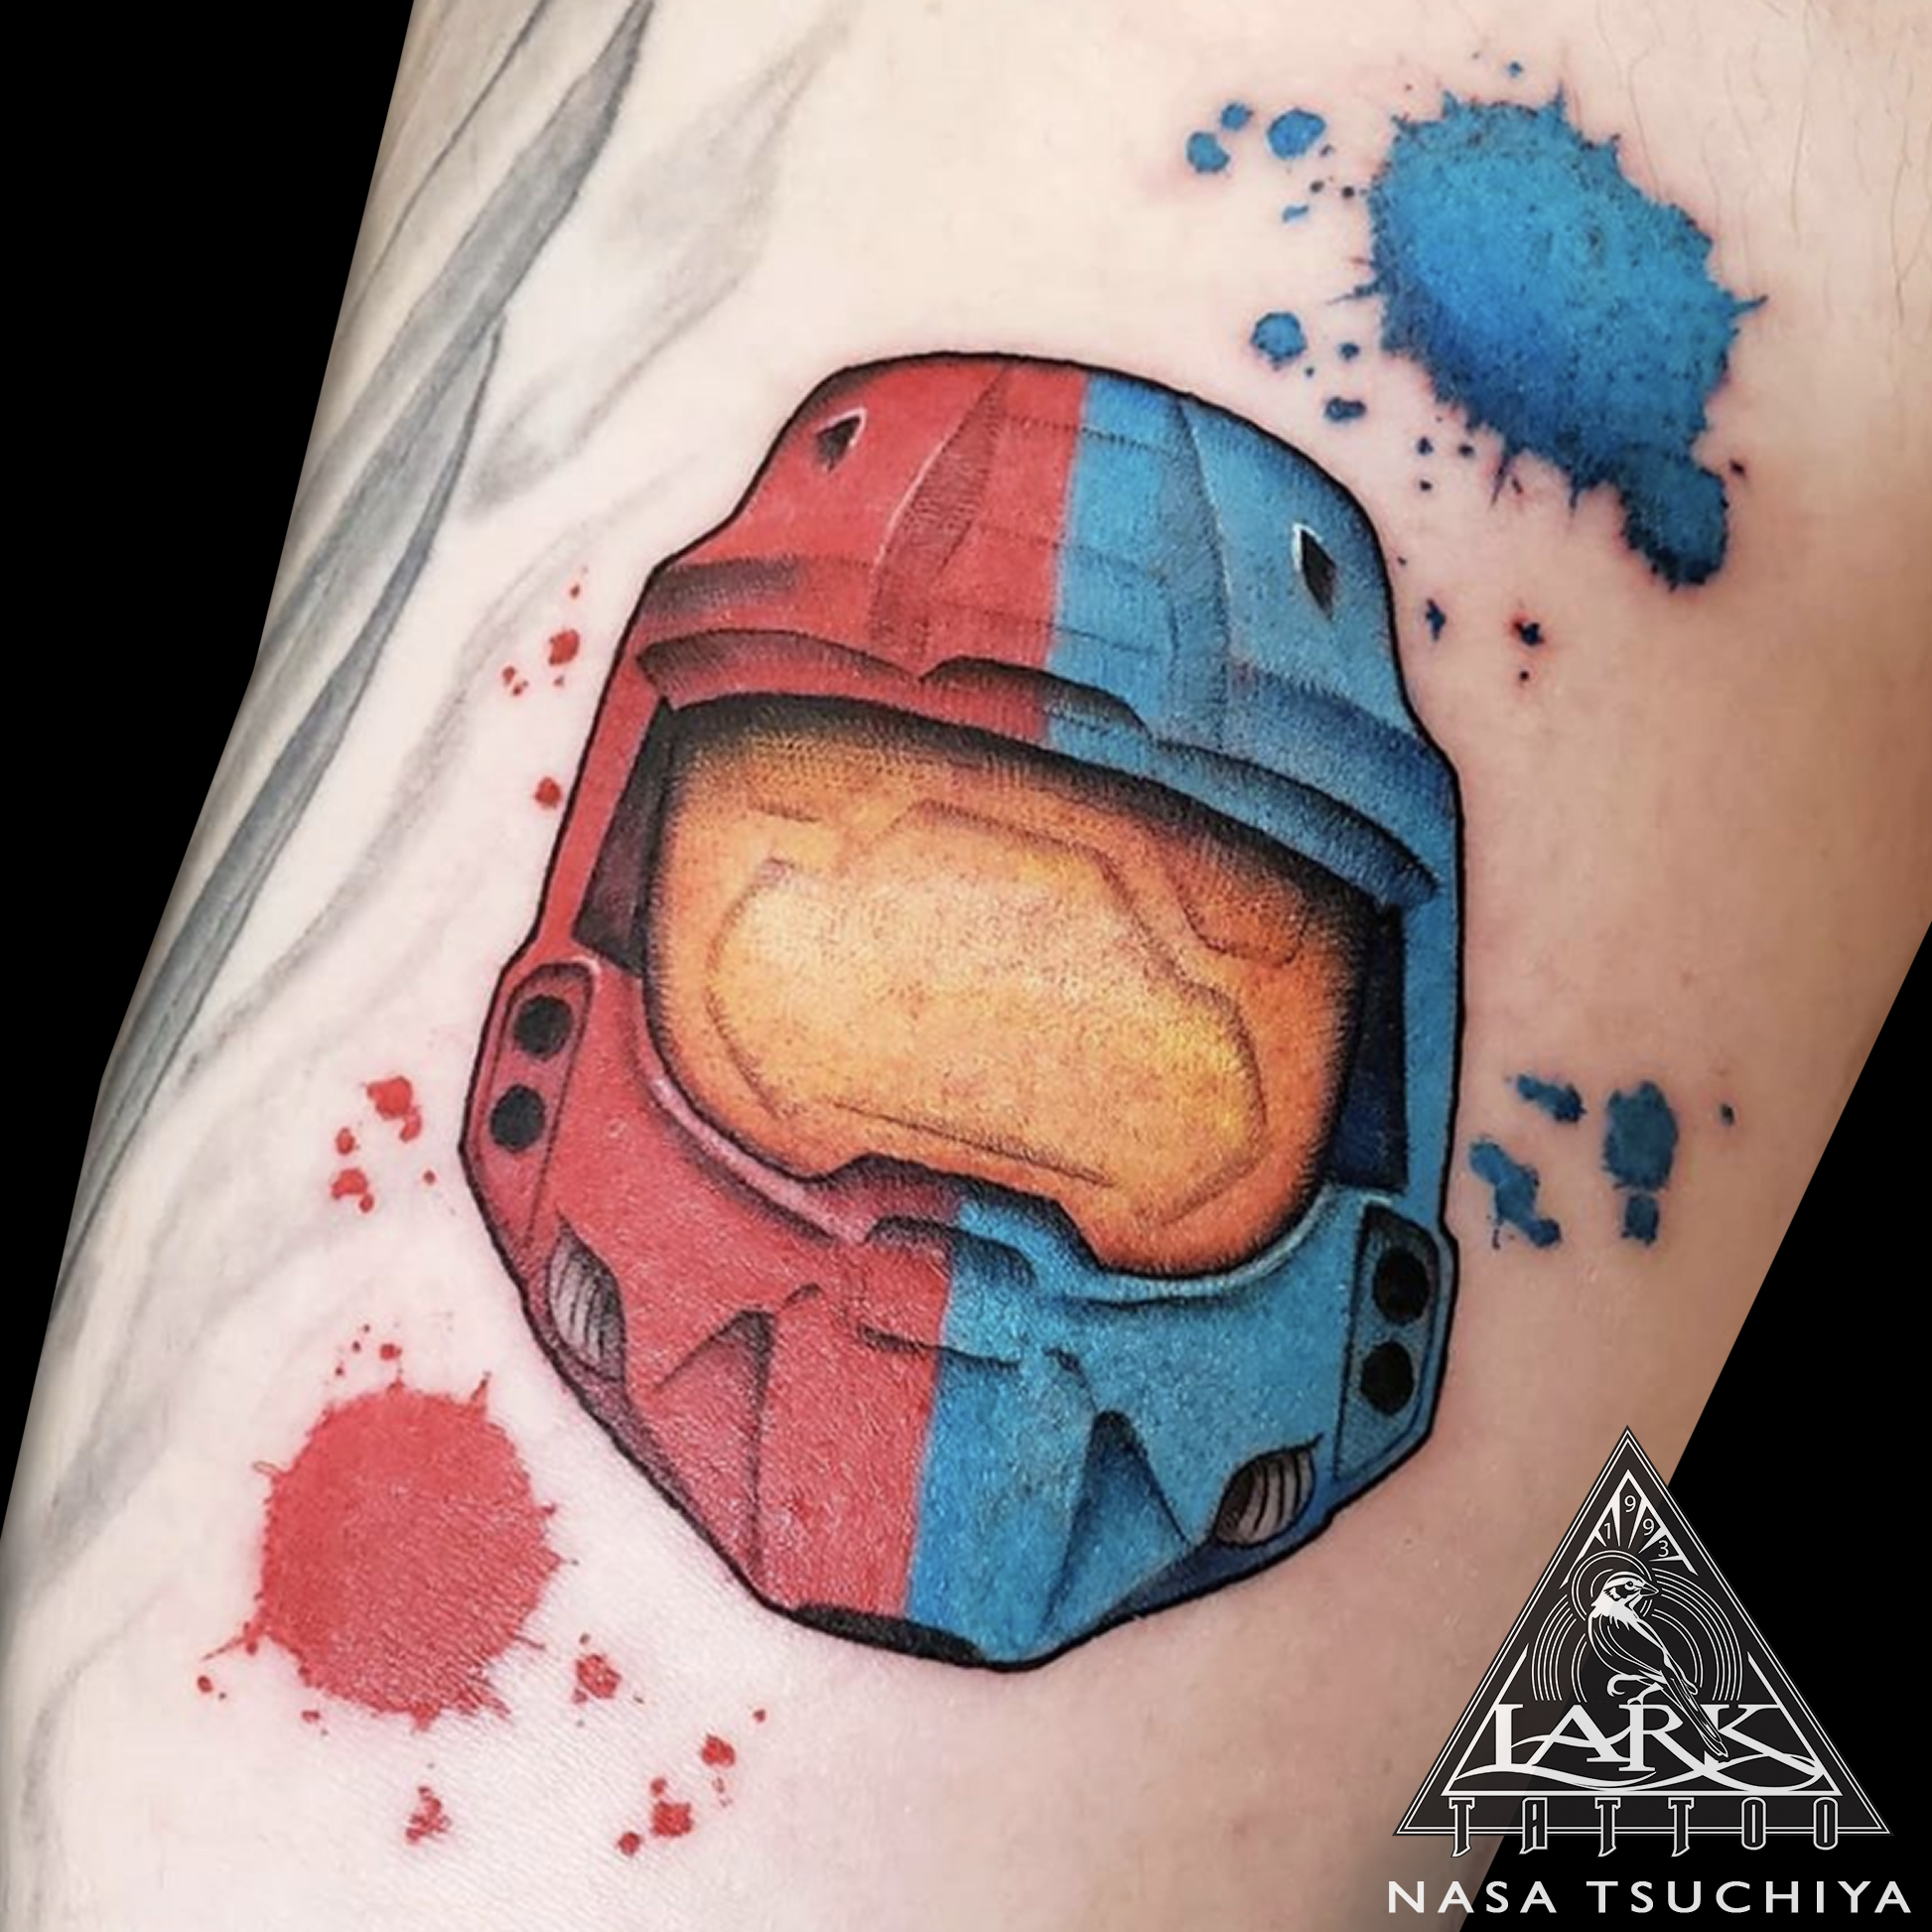 LarkTattoo, Tattoo, NasaTsuchiya, NasaLarkTattoo, NasaTsuchiyaLarkTattoo, Tattoos, Halo, HaloTattoo, VideoGame, VideoGameTattoo, Masterchief, MasterchiefTattoo, Gamer, GamerTattoo, HaloWars, HaloWarsTattoo, RedVsBlue, RedVsBlueTattoo, HaloRedVsBlue, HaloRedVsBlueTattoo, UNSC, UNSCTattoo, ColorTattoo, LadyTattooer, FemaleTattooer, FemaleArtist, FemaleTattooArtist, TattooArtist, Tattoist, Tattooer, LongIslandTattooArtist, LongIslandTattooer, LongIslandTattoo, TattooOfTheDay, Tat, Tats, Tatts, Tatted, Inked, Ink, TattooInk, AmazingInk, AmazingTattoo, BodyArt, LarkTattooWestbury, Westbury, LongIsland, NY, NewYork, USA, Art, Tattedup, InkedUp, LarkTattoos